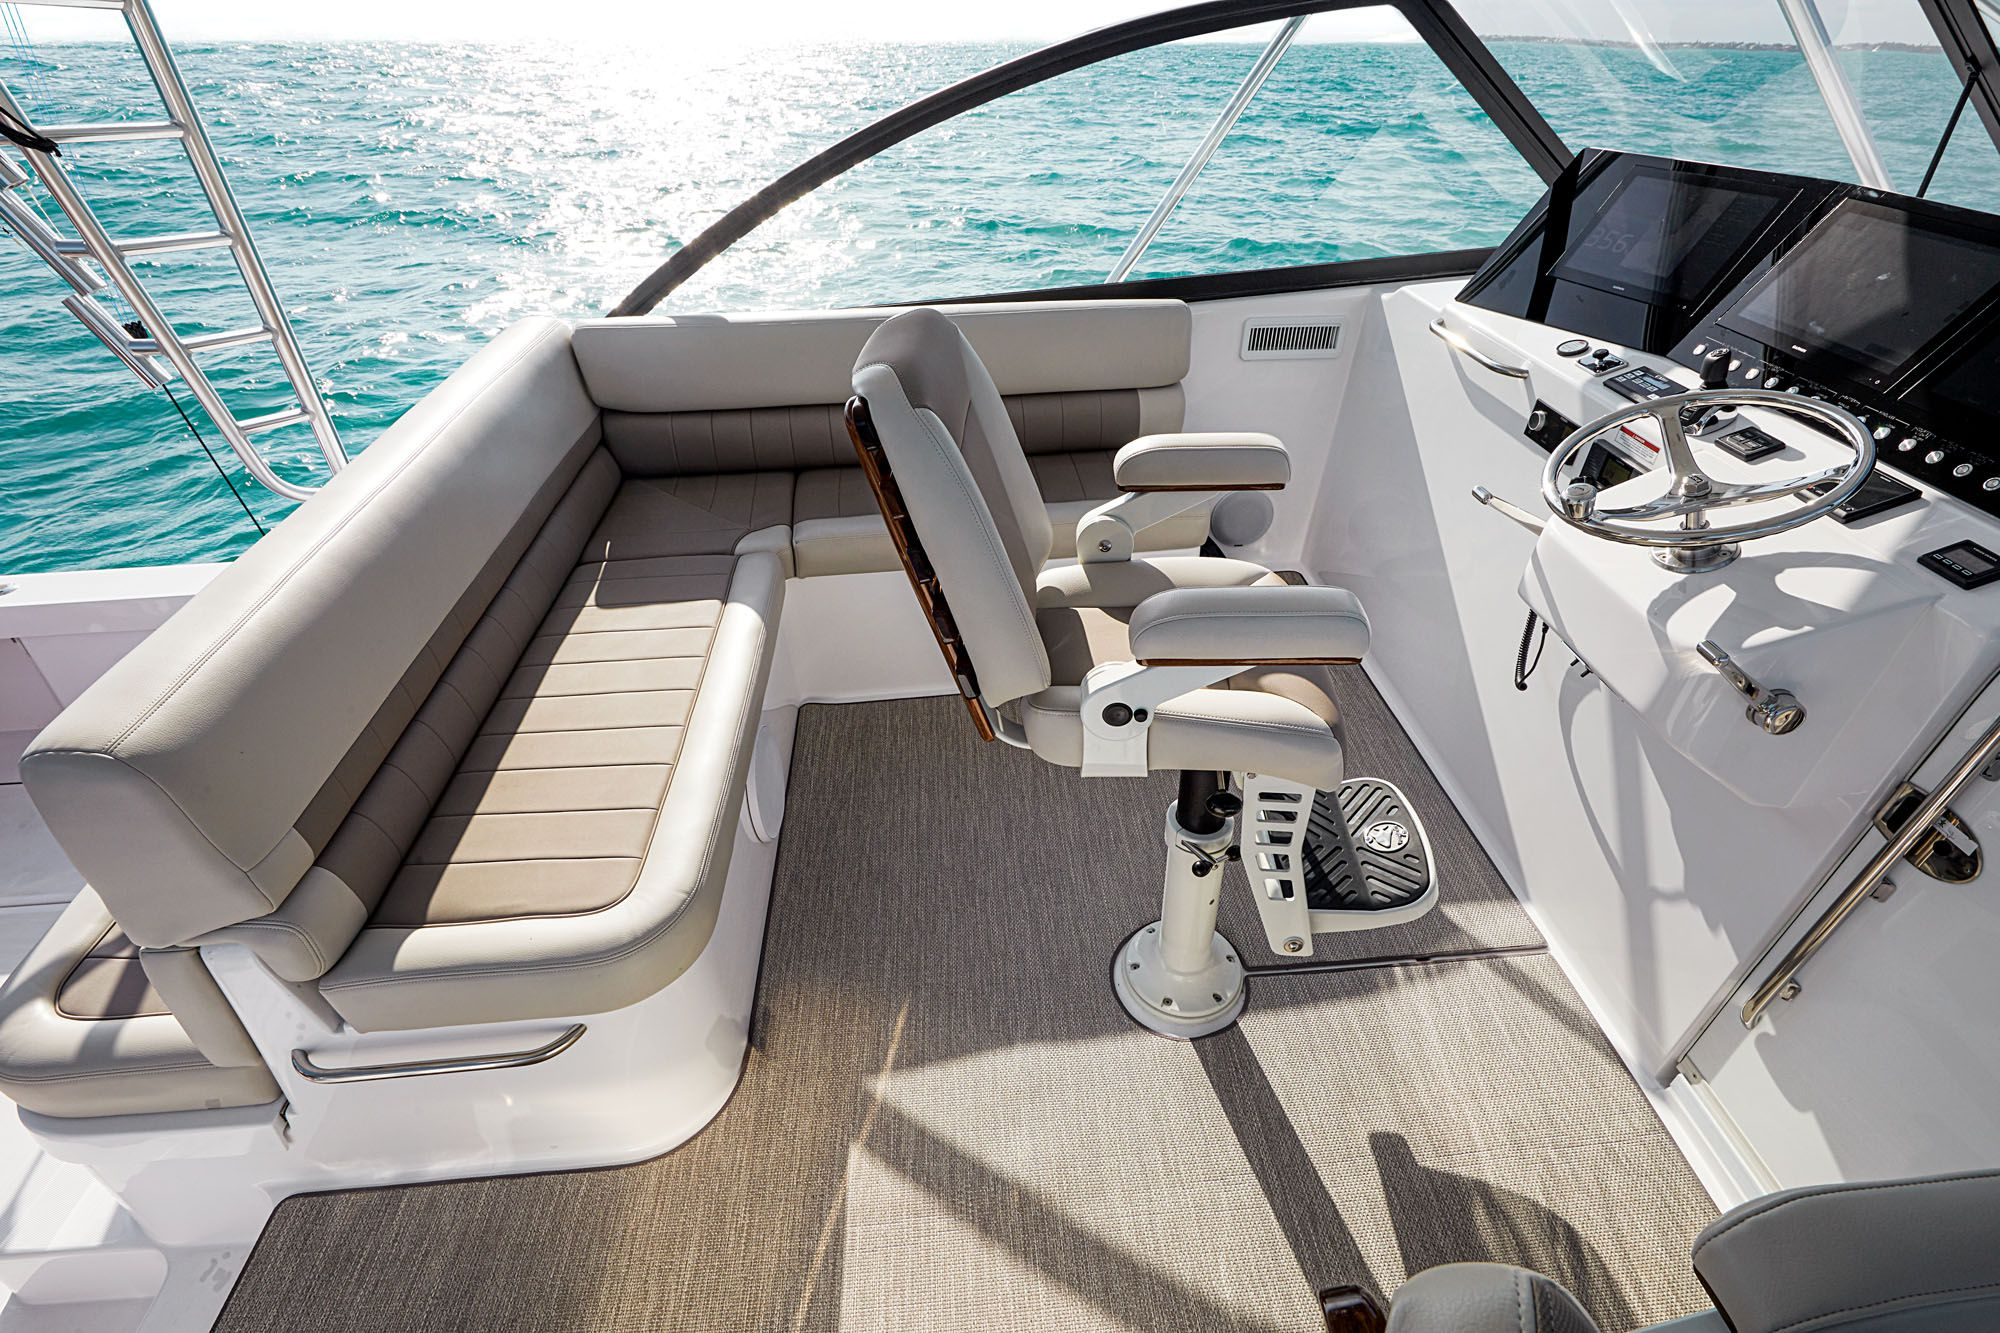 The bridge deck features L-shaped seating and a deluxe captain's chair on the centerline.